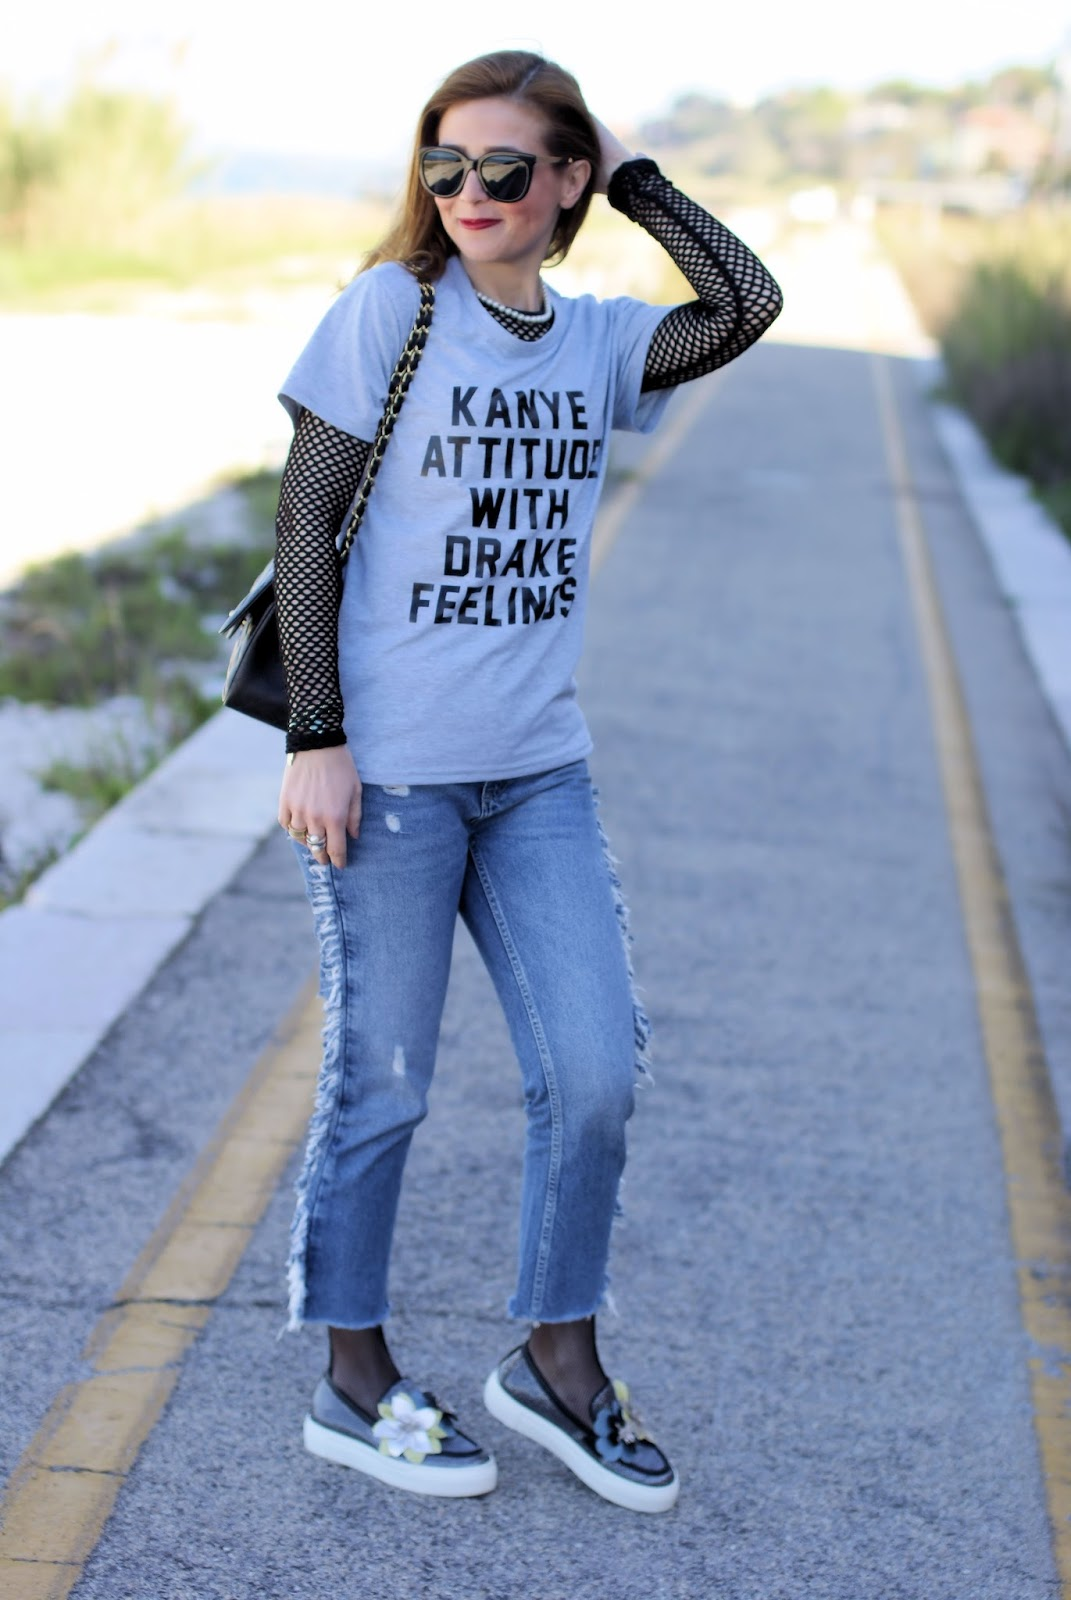 Kanye attitude with Drake feelings and 181 shoes on Fashion and Cookies fashion blog, fashion blogger style